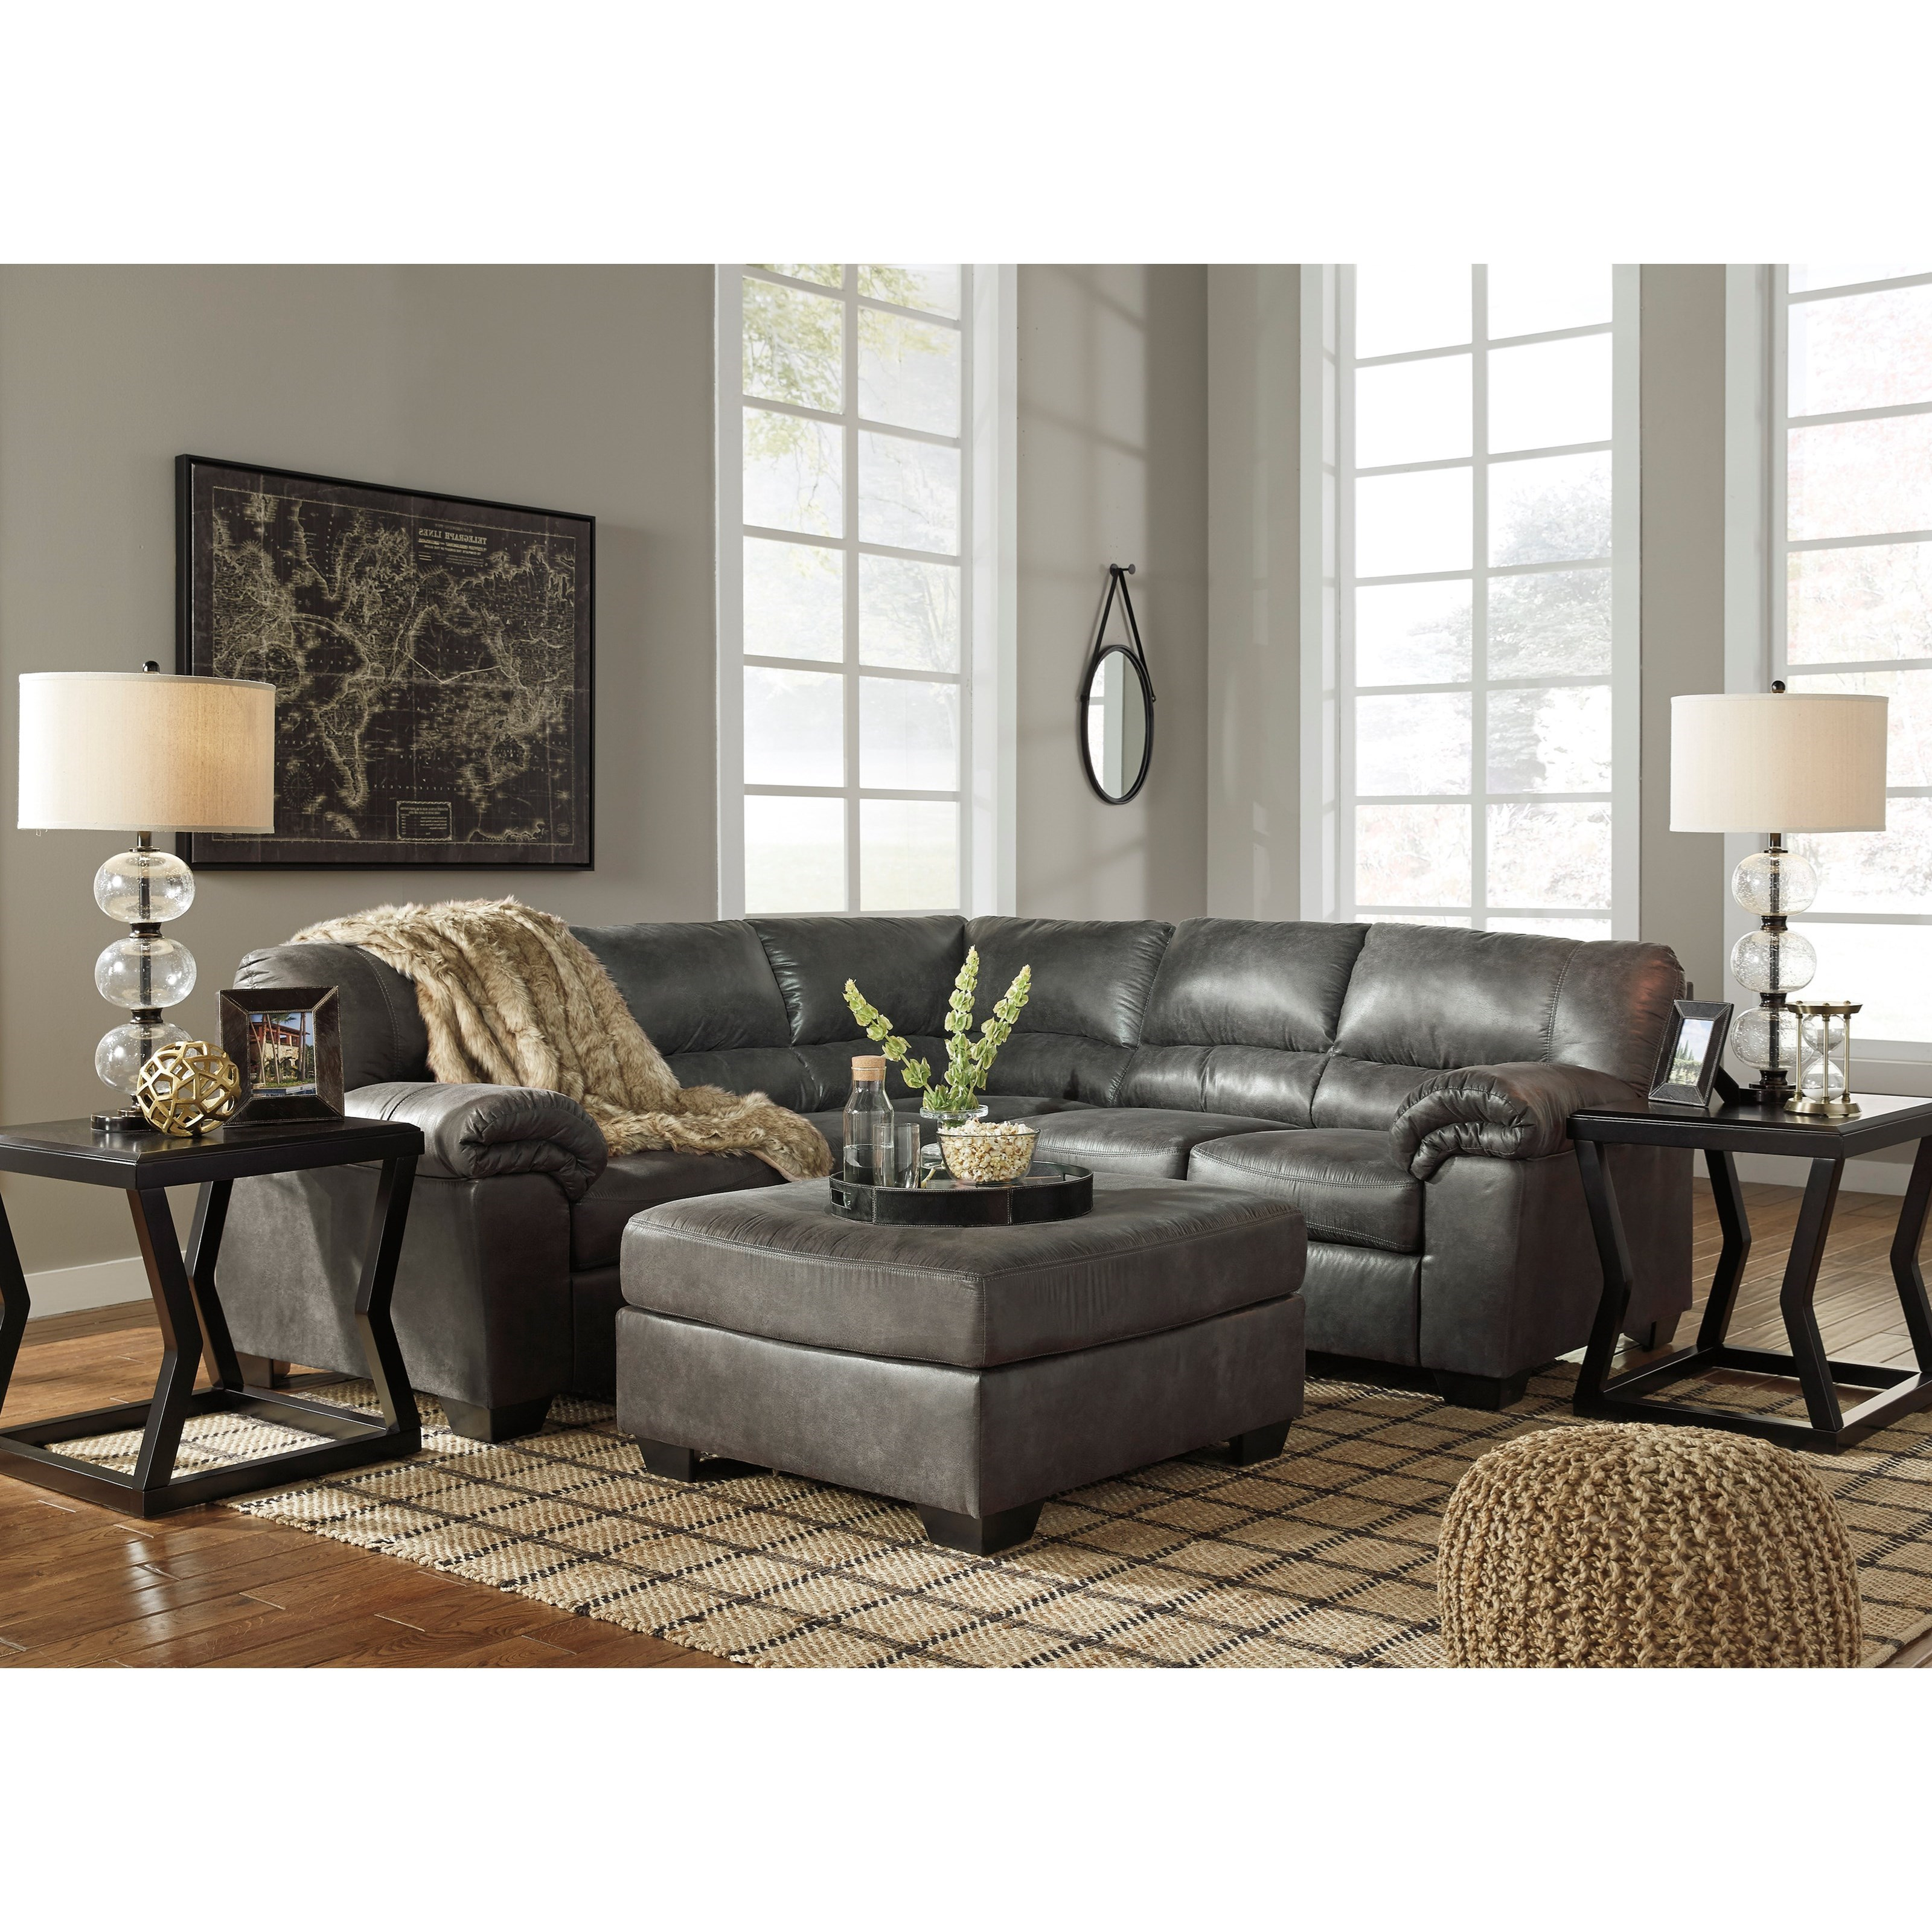 Ashley Signature Design Bladen Stationary Living Room Group Dunk Bright Furniture